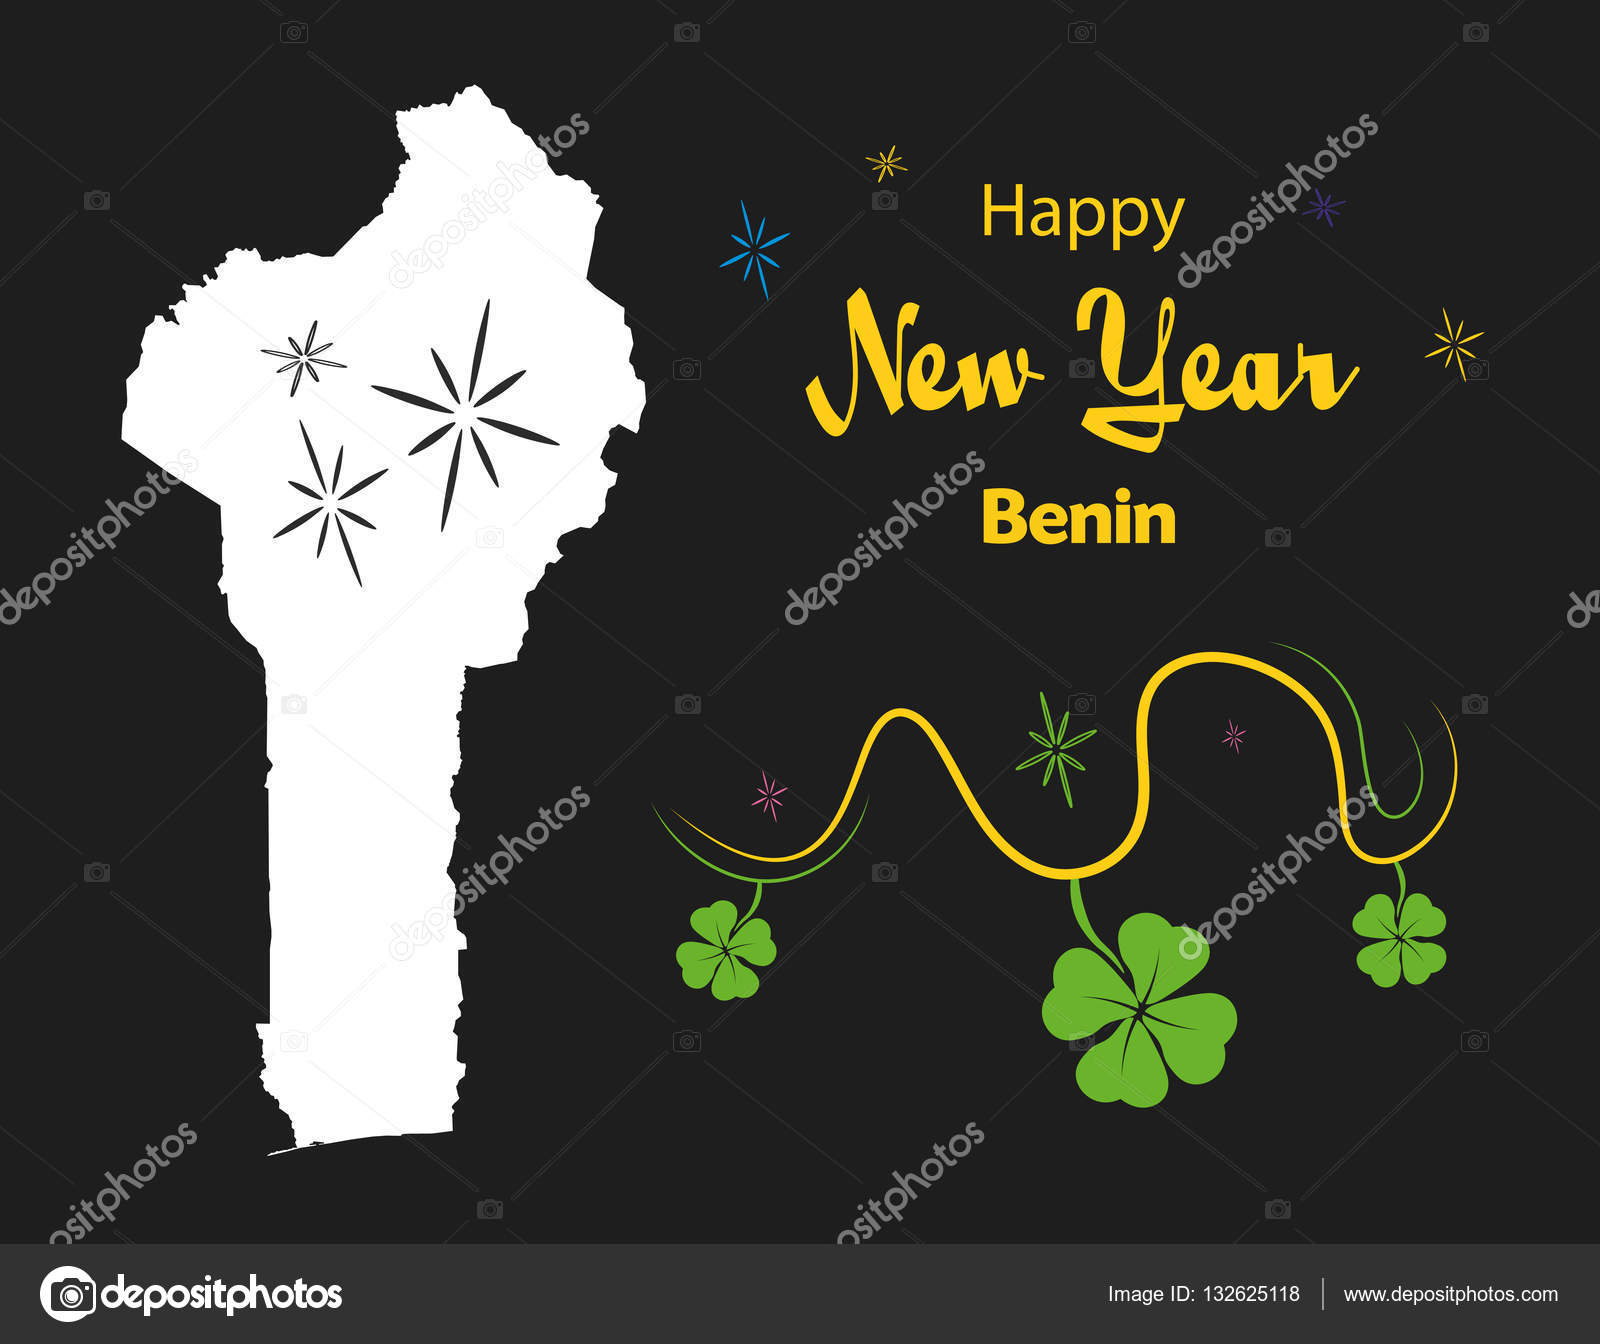 happy new year theme with map of benin stock vector